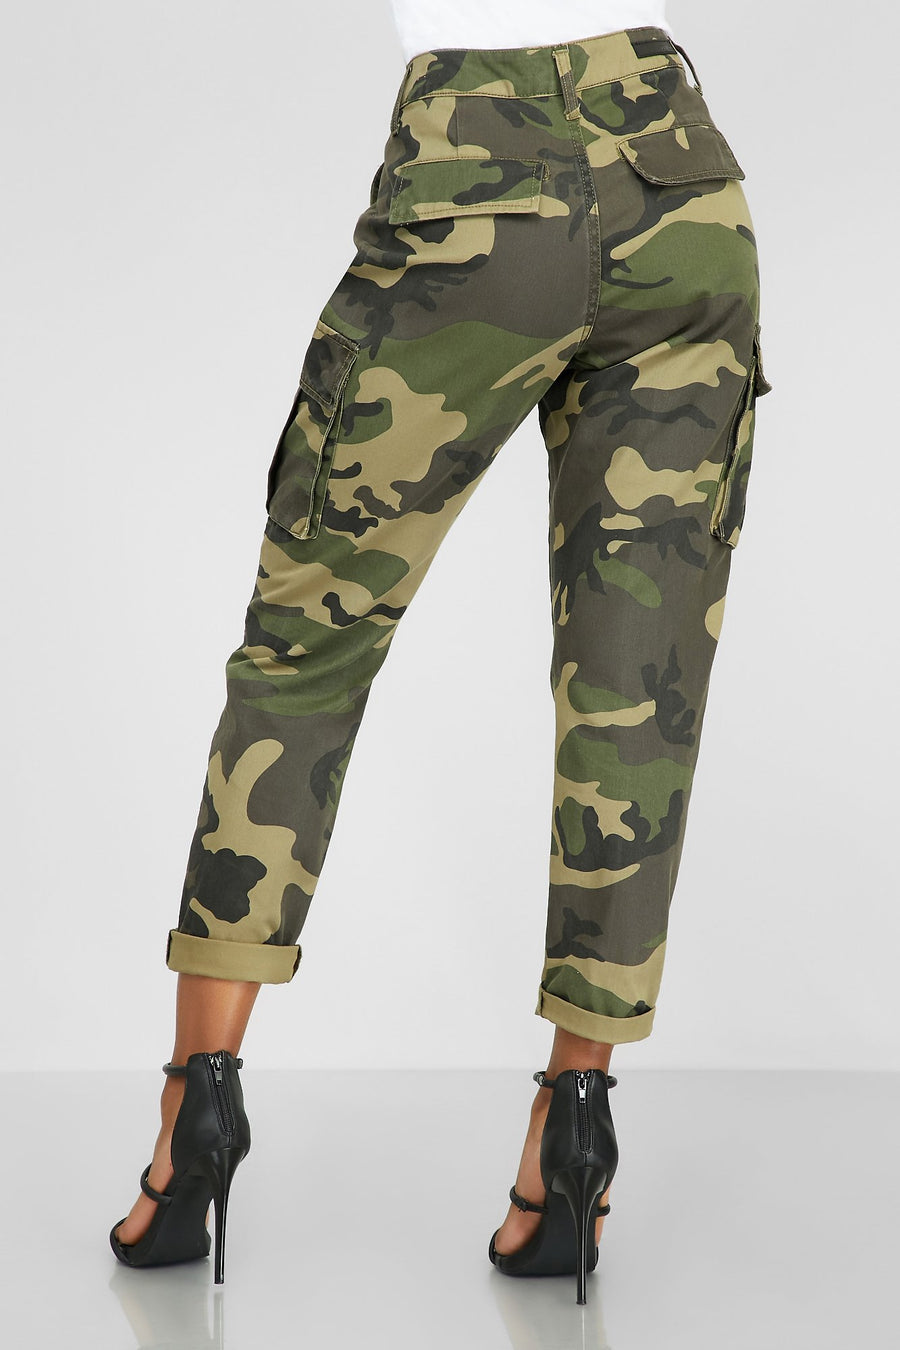 Ready, Aim, FIRE Camo Pants